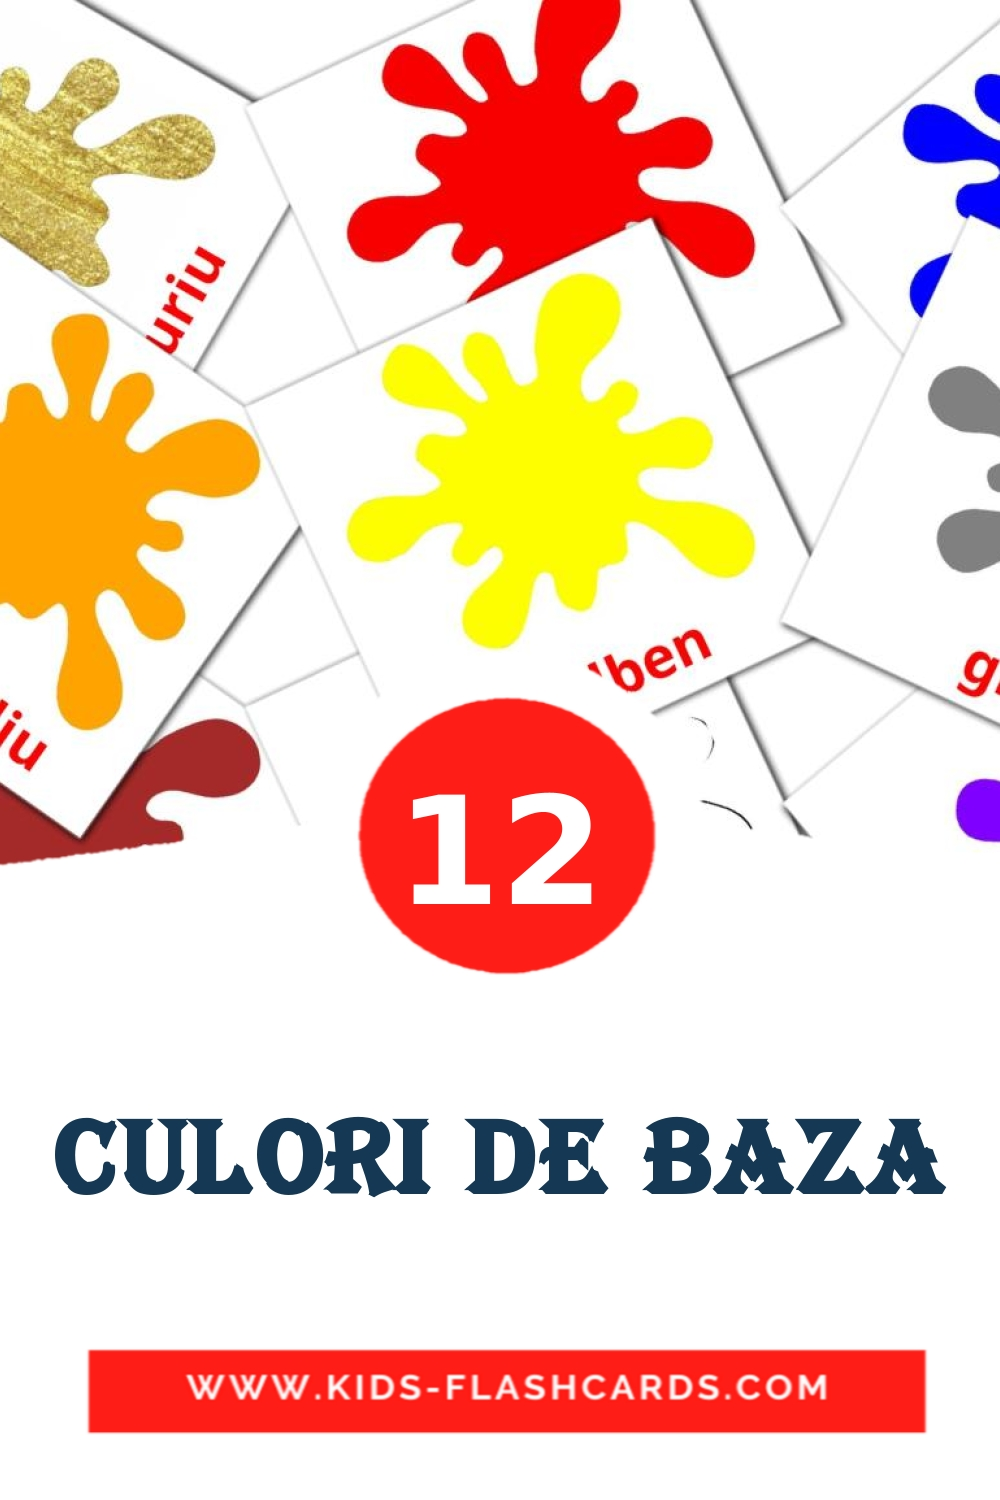 Culori de baza - free cards in romanian